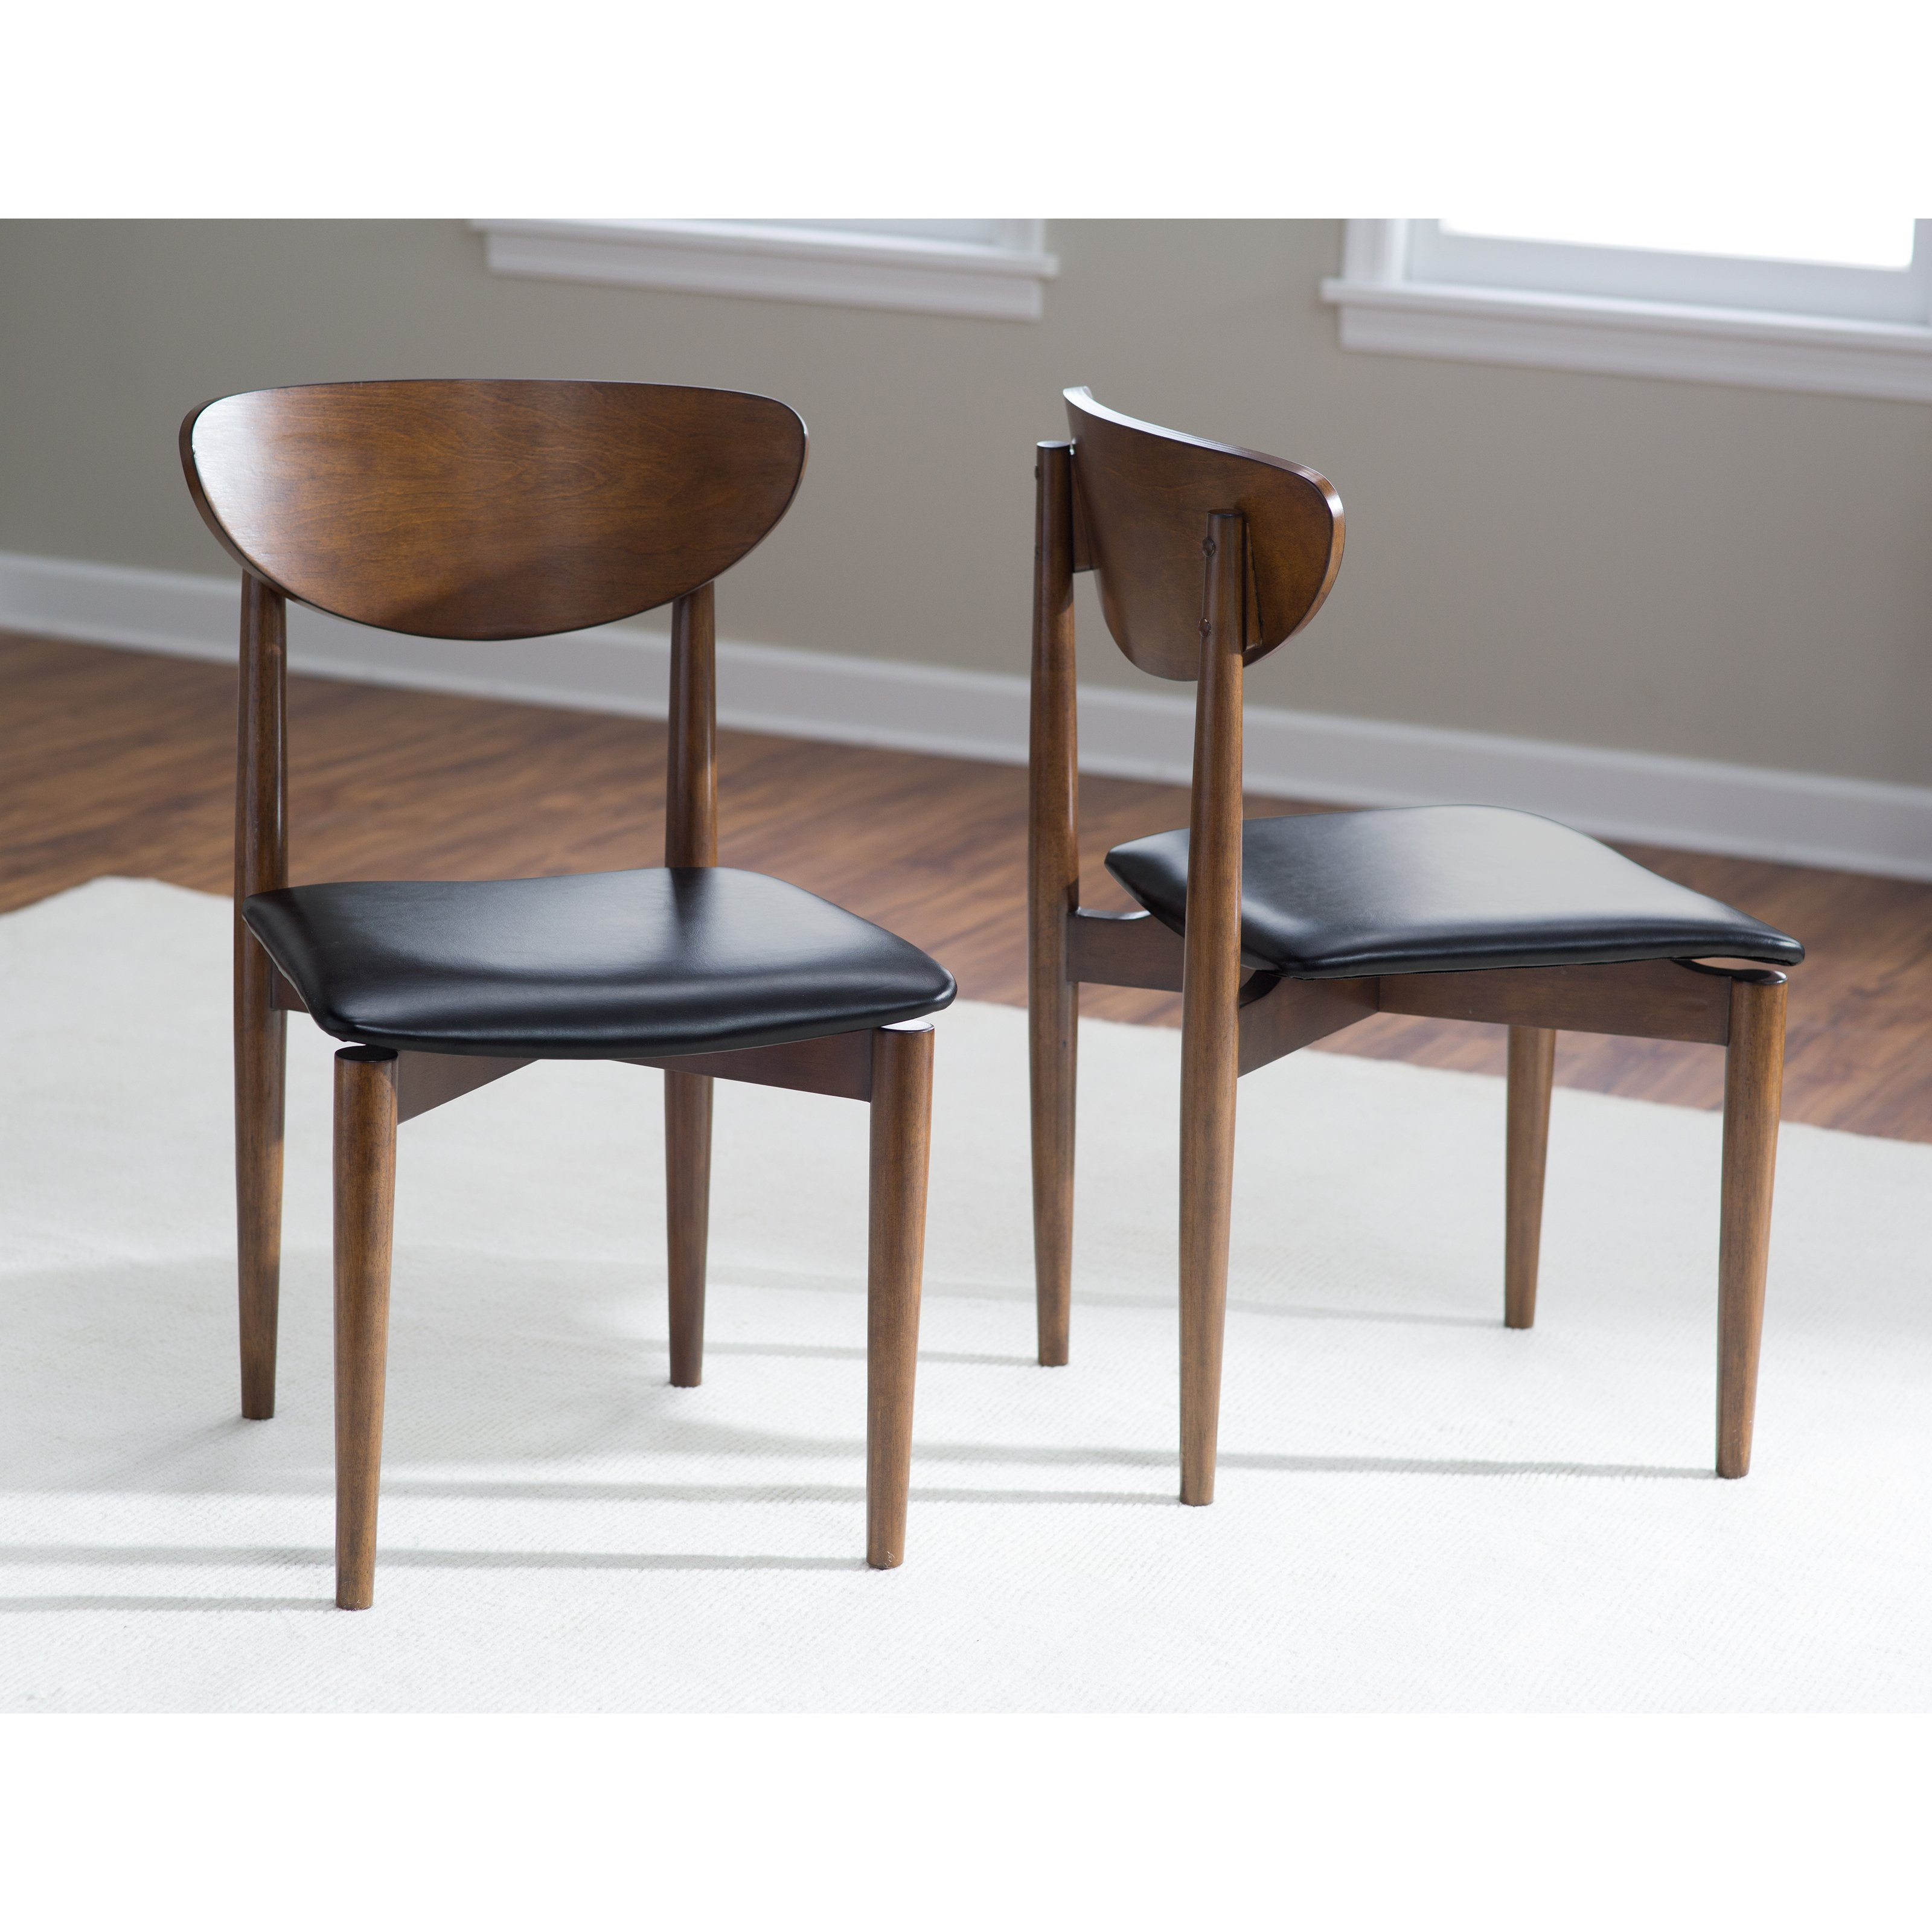 Best ideas about Mid Century Dining Chair . Save or Pin Belham Living Carter Mid Century Modern Dining Chair Set Now.